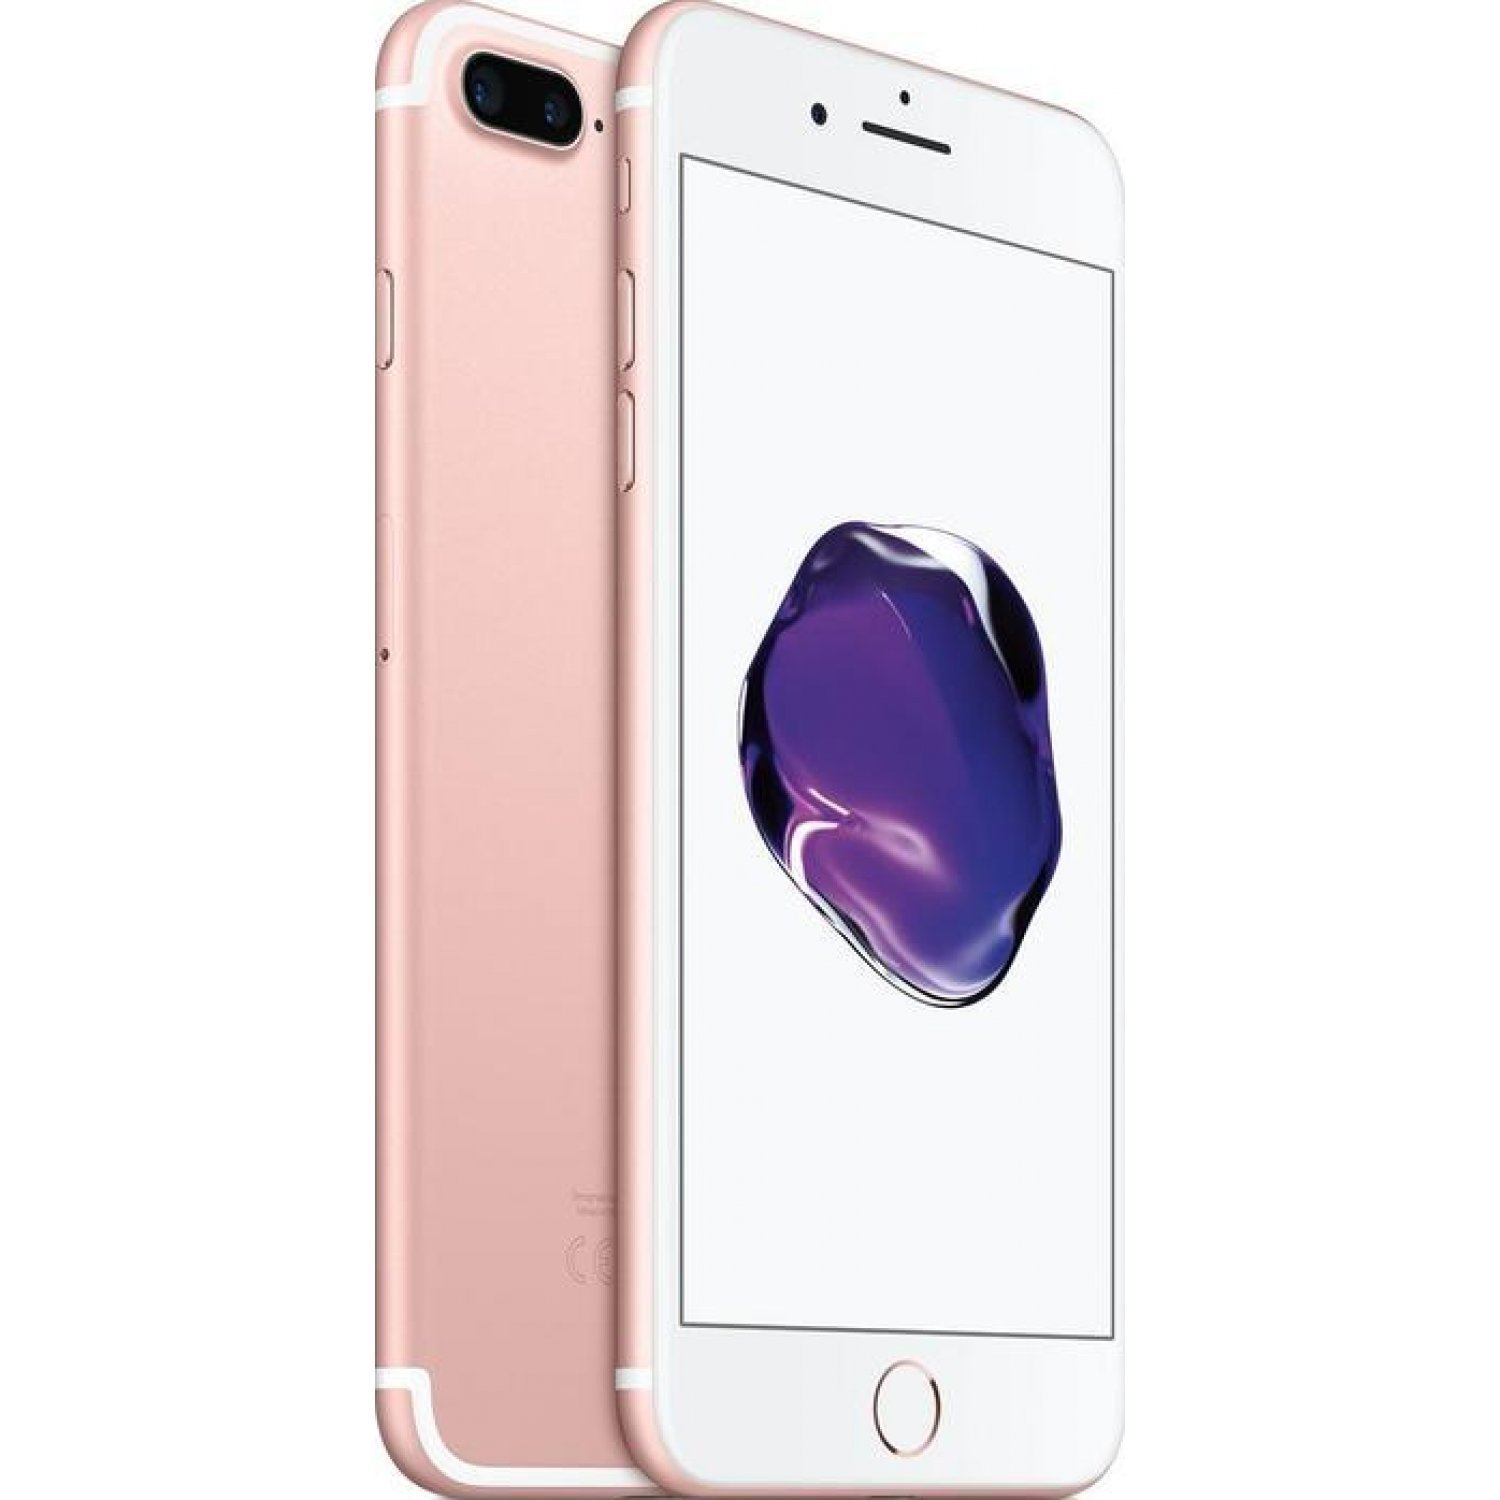 Мобильный телефон Apple iPhone 7 Plus 32GB (Model A1784 MNQQ2RM/A) Rose Gold